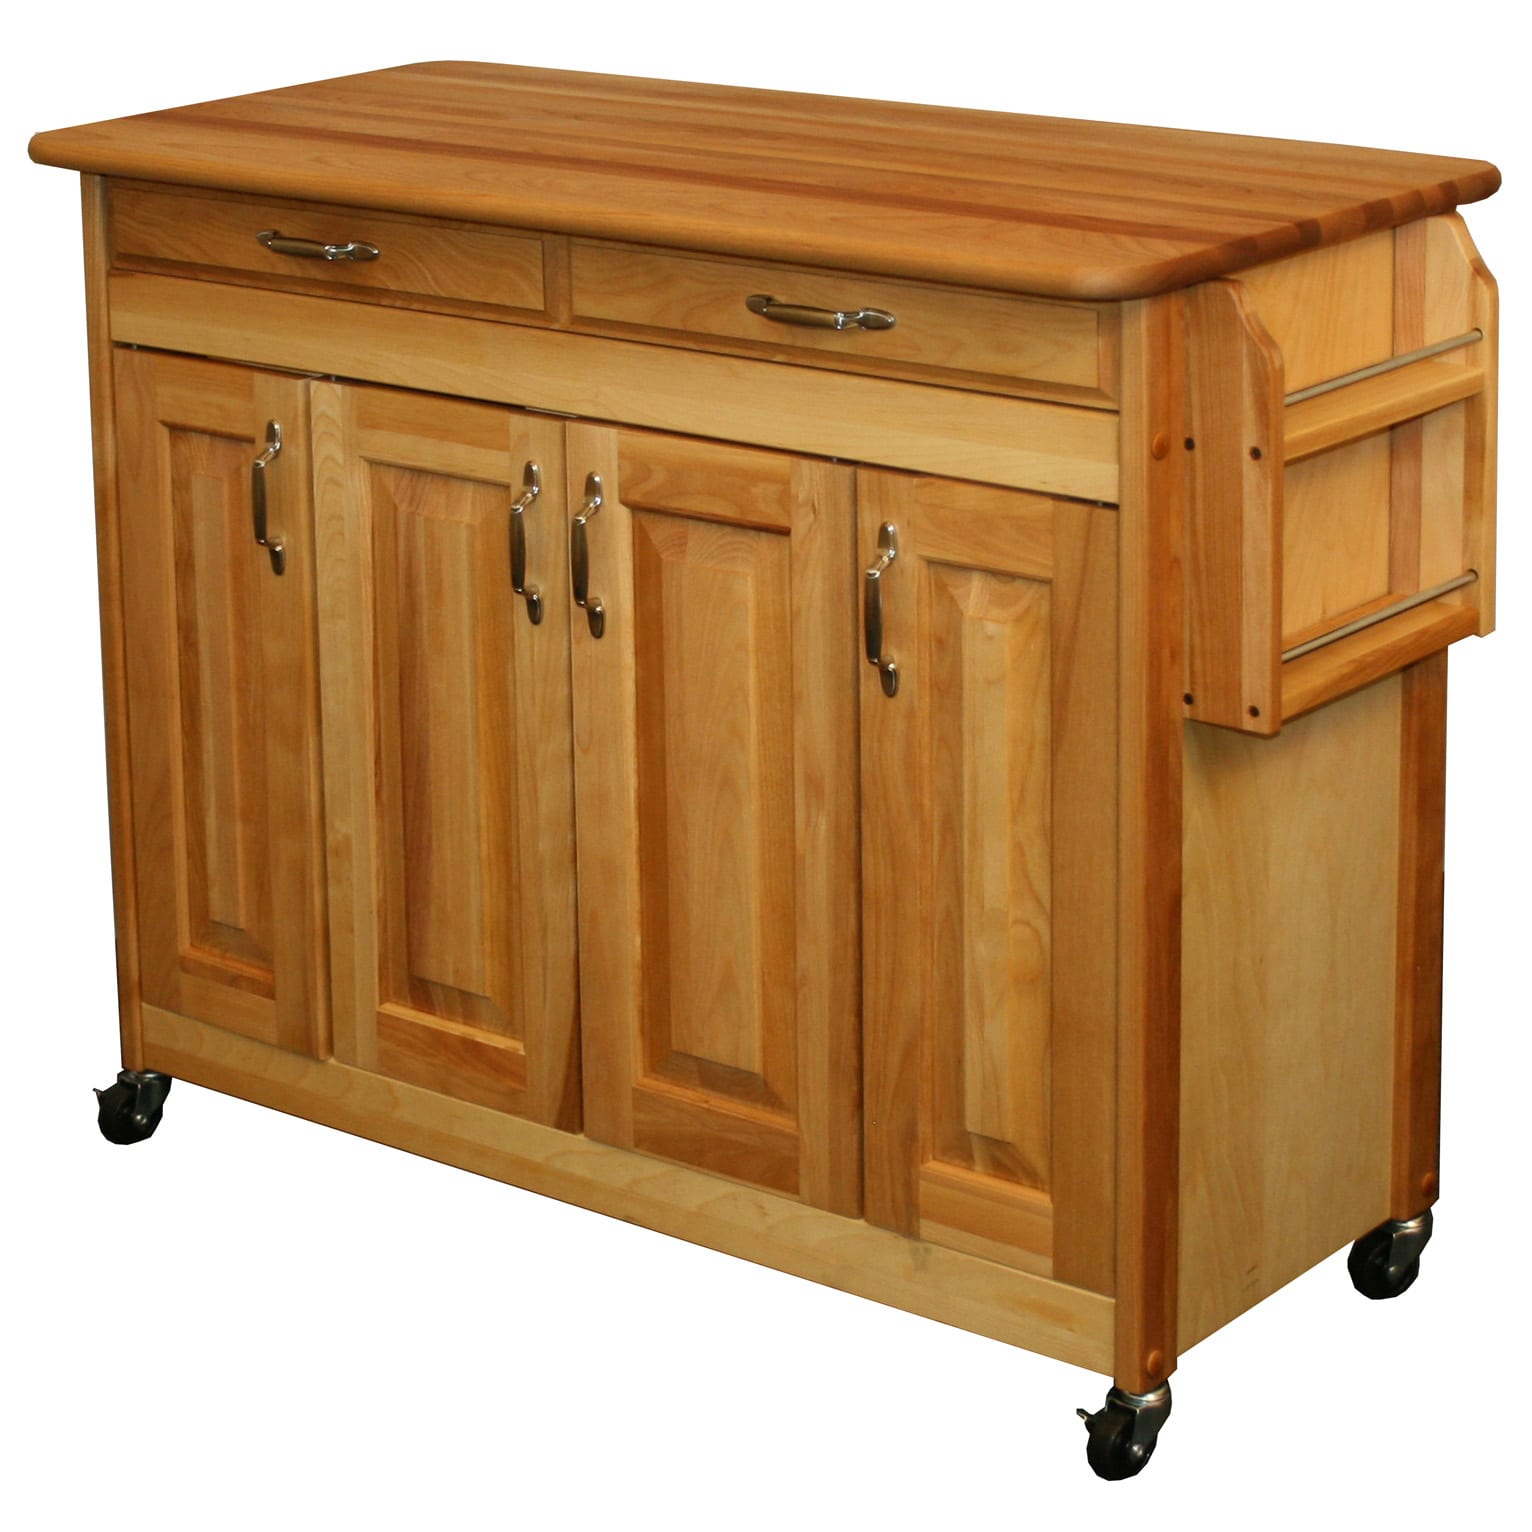 Butcher's Block Kitchen Island